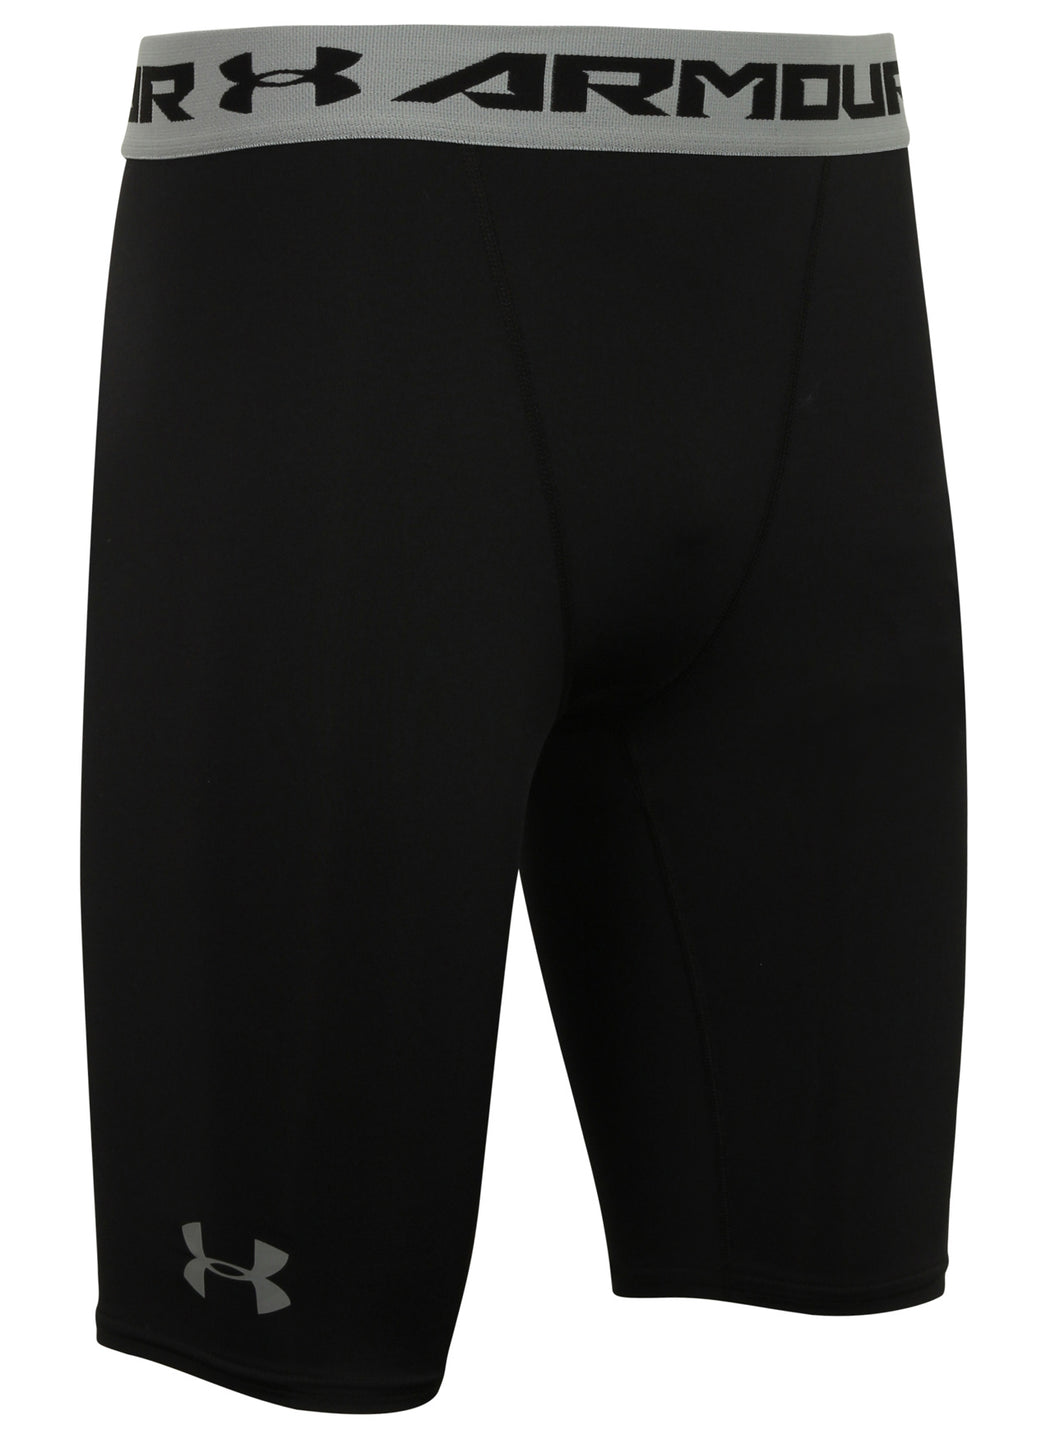 Under Armour Men's HeatGear Black Long Compression Shorts Short Tights Baselayer